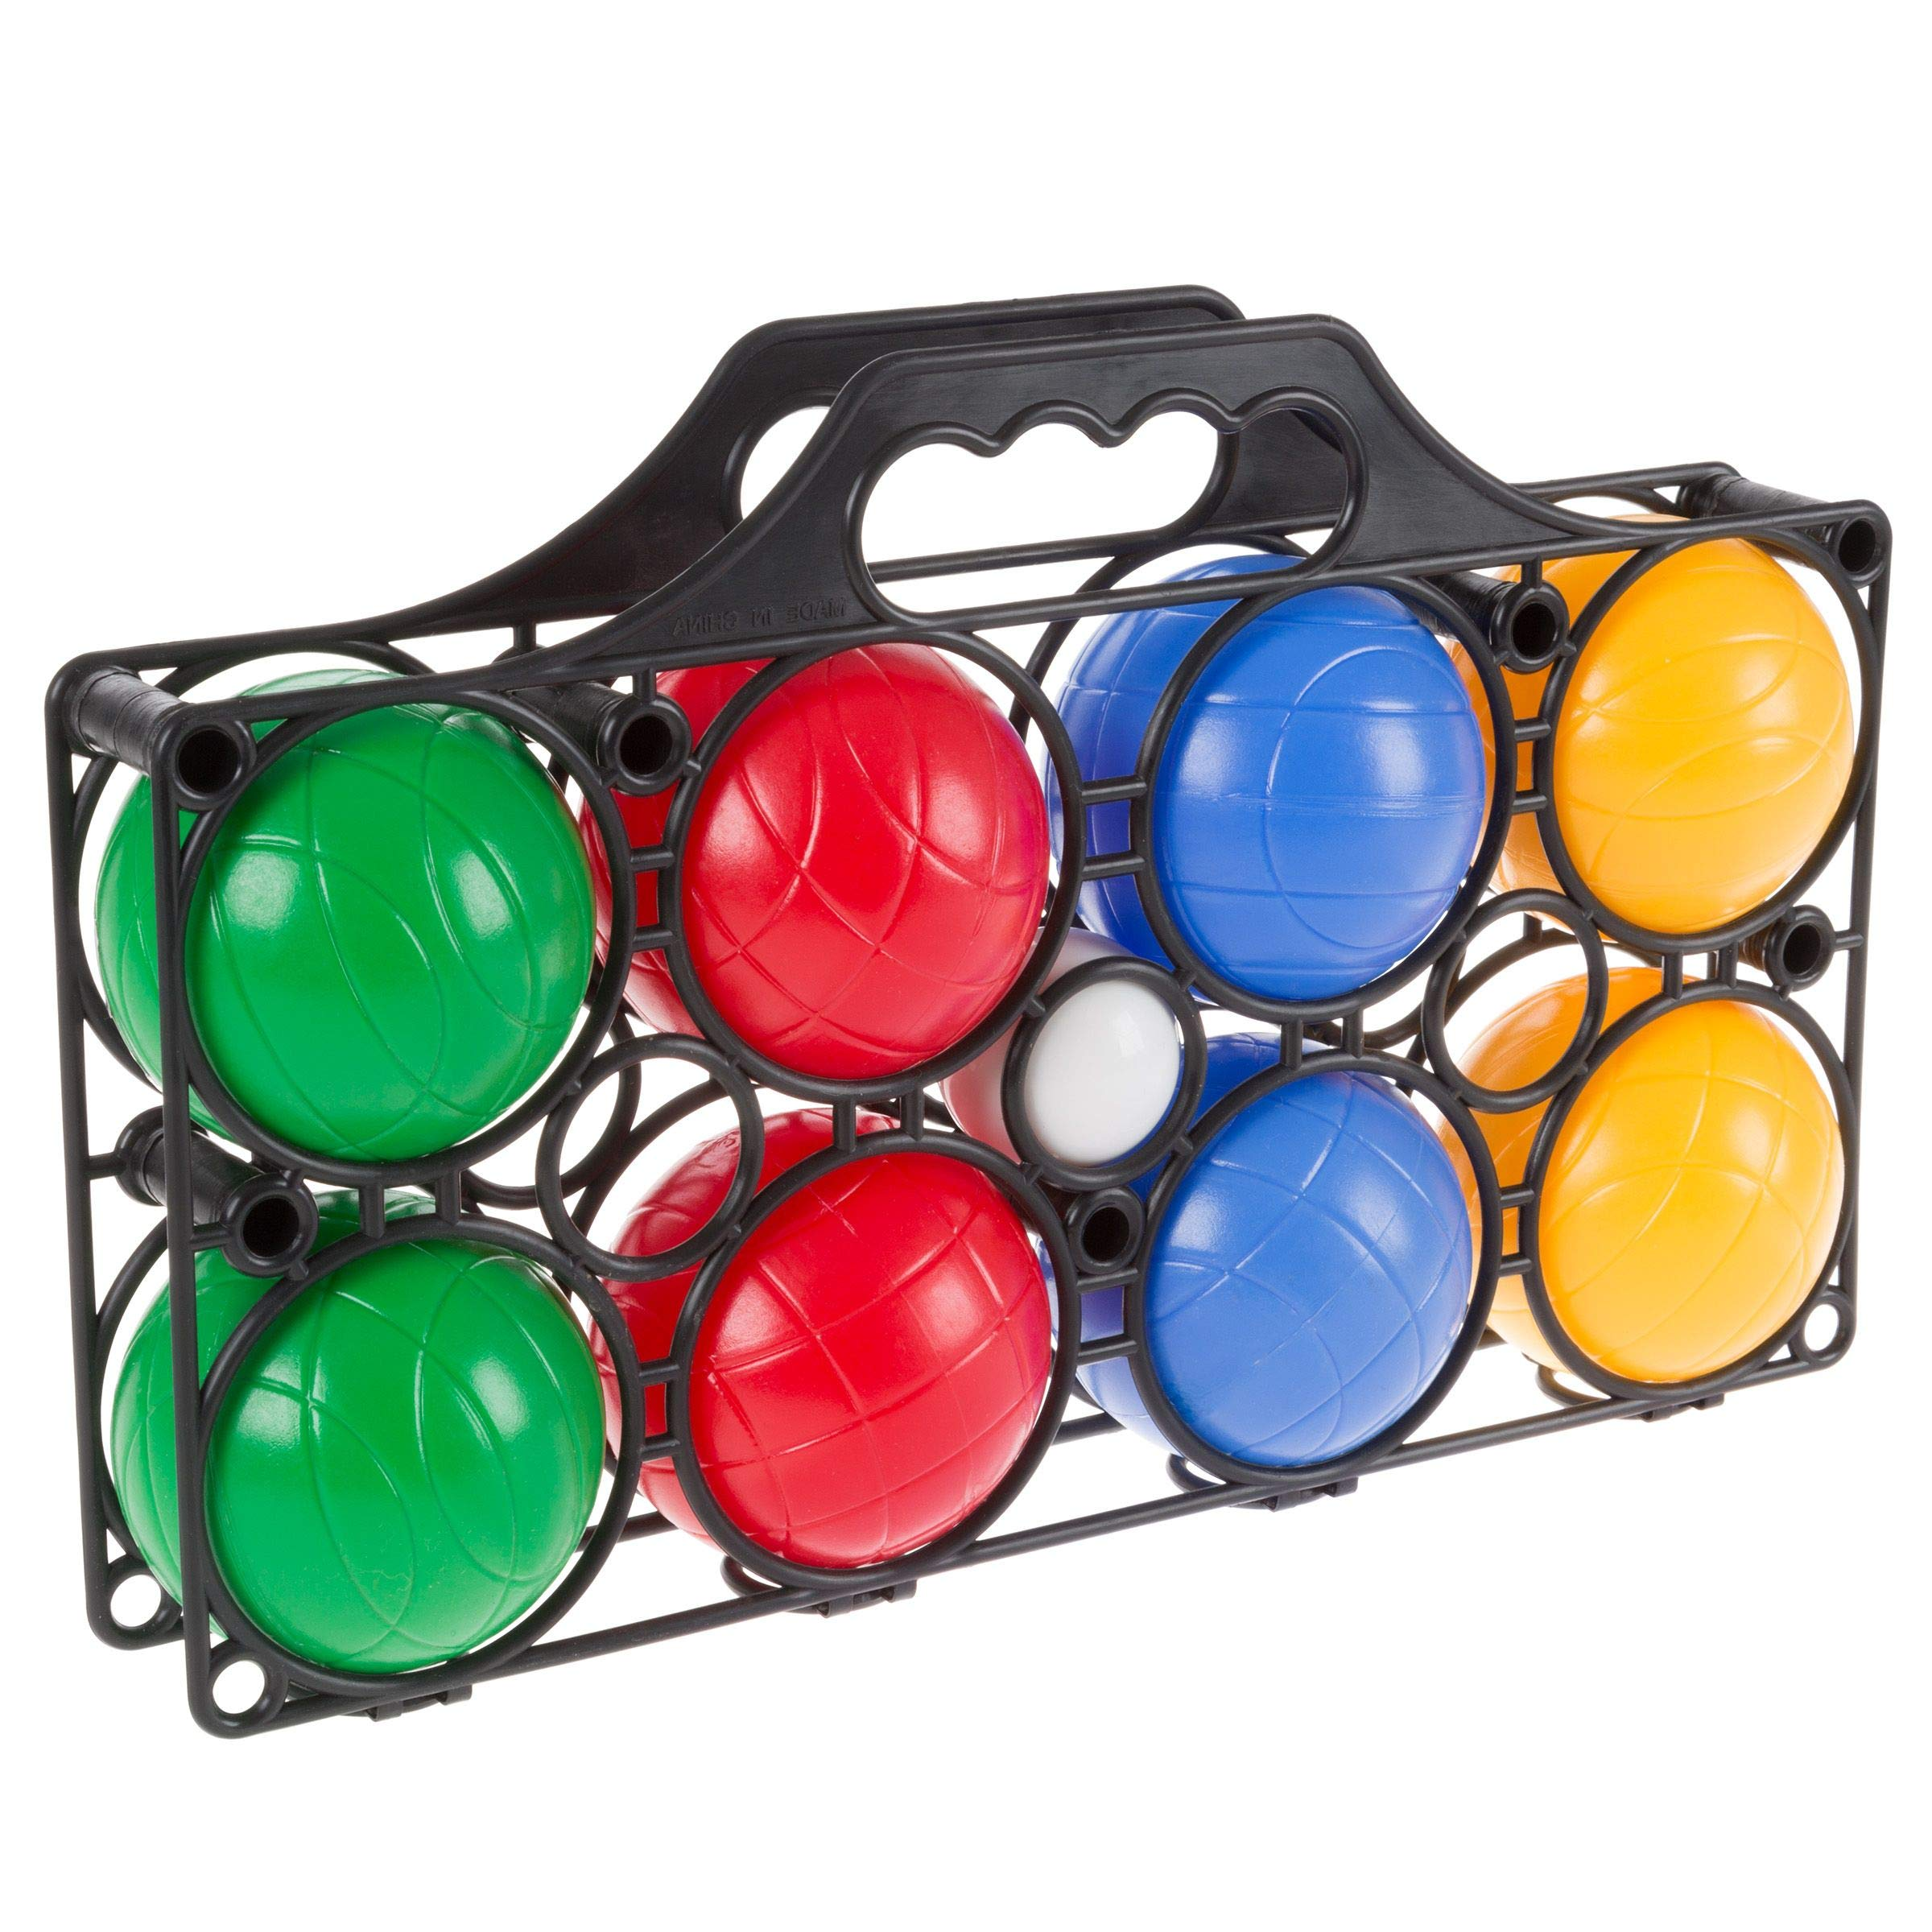 Aromzen Beginner Bocce Ball Set with 8 Colorful Bocce Balls, Pallino and Carrying Case- Classic Outdoor Game for Kids, Adults and Family